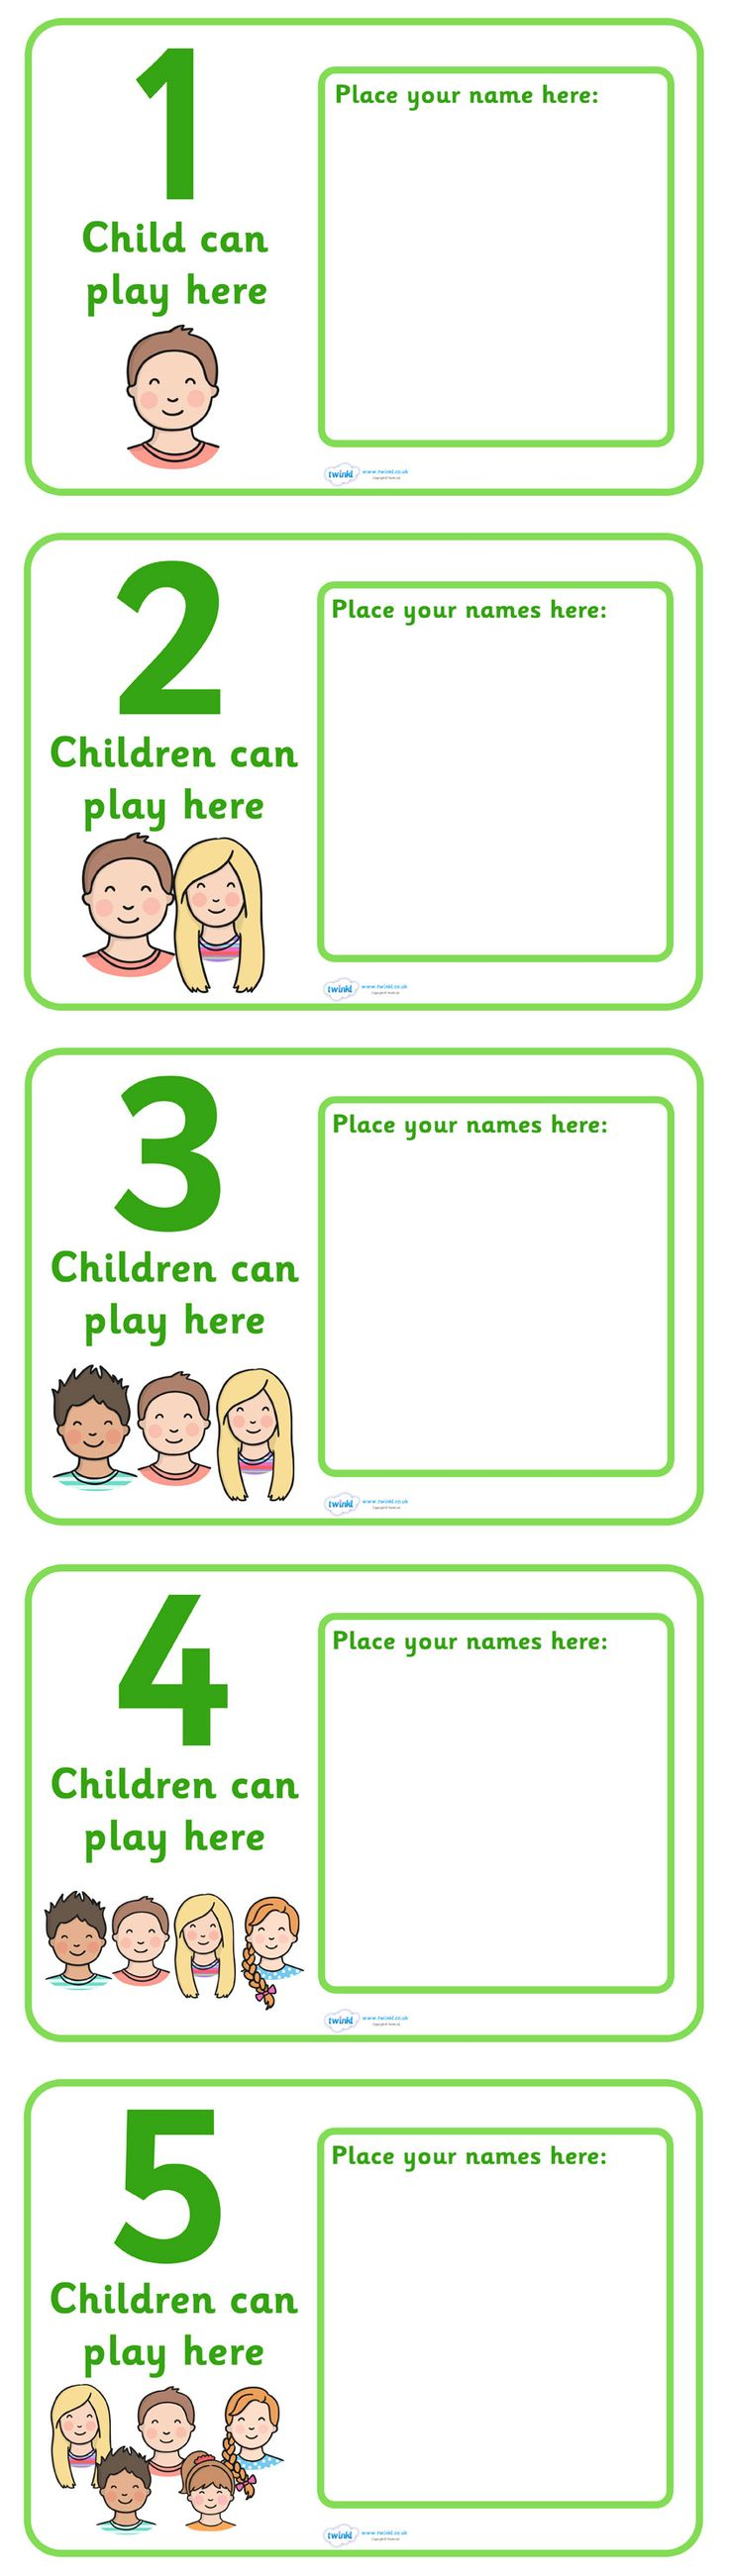 Twinkl Resources >> How Many Can Play Here Name Posters >> Thousands of printable primary teaching resources for EYFS, KS1, KS2 and beyond! display, poster, classroom area display, child self management